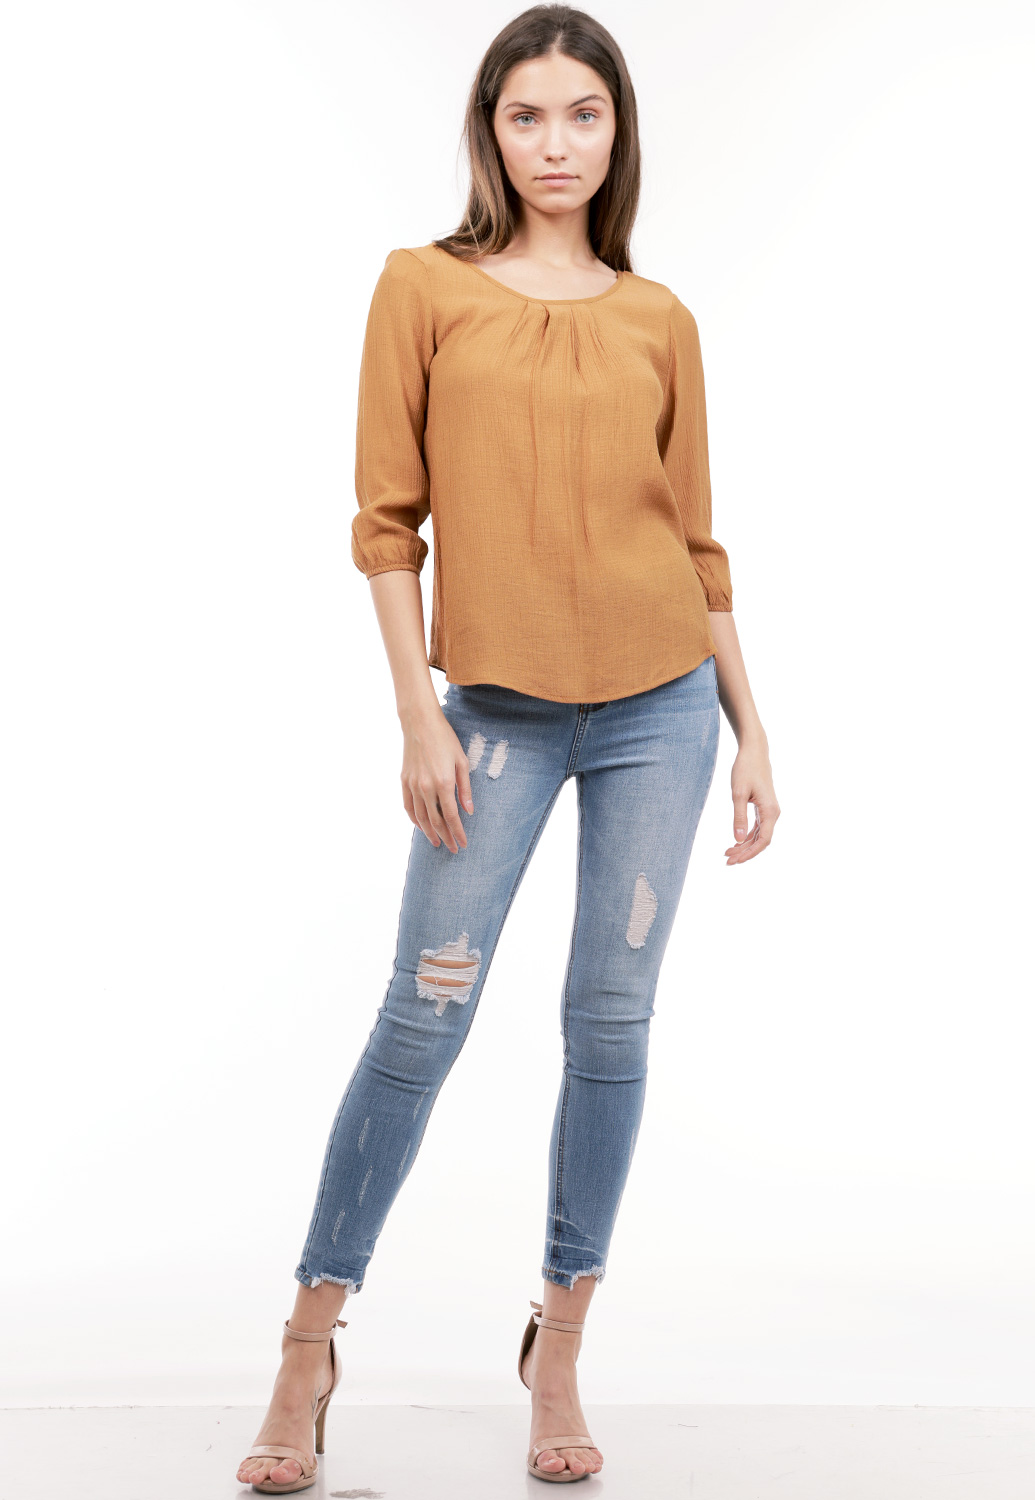 Back Criss Cross Top